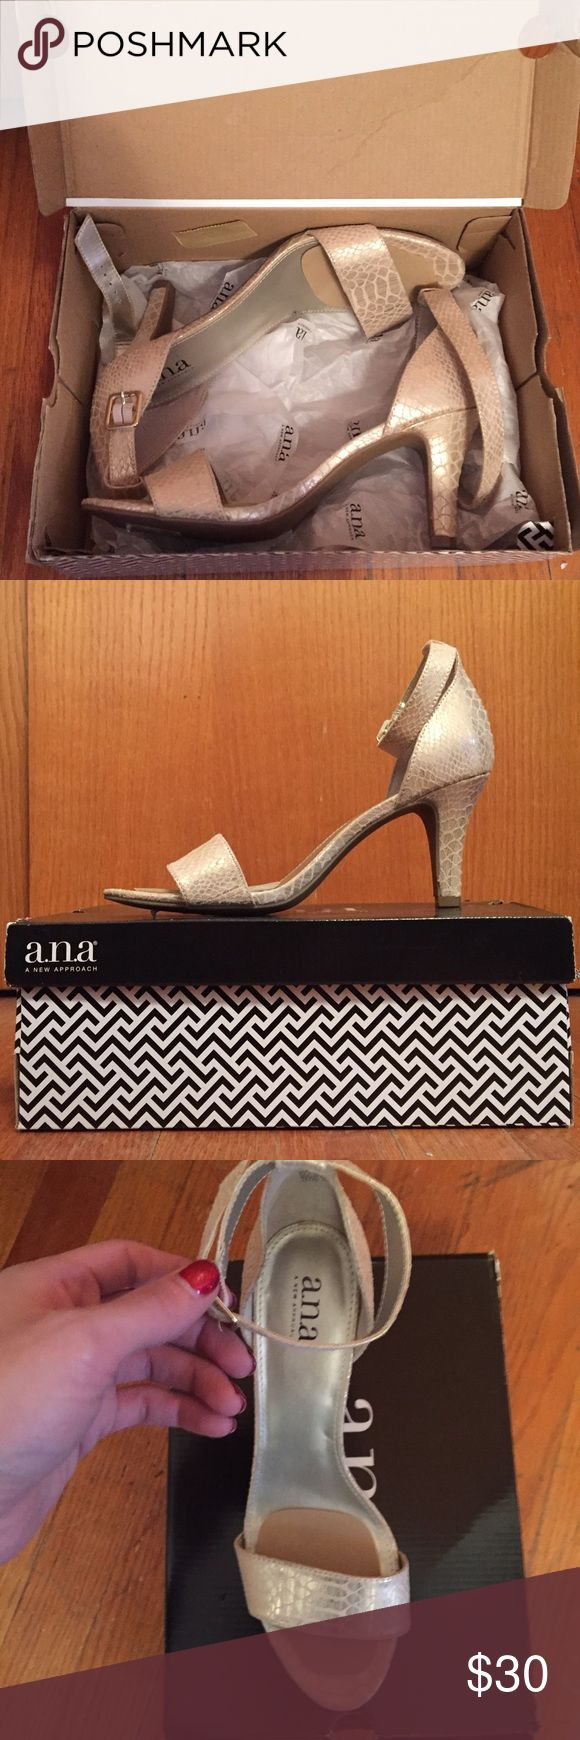 NWT a.n.a Zita metallic gold strappy sandal heels NWT IN BOX a.n.a Zita metallic gold strappy high heel sandals. Bought for a wedding and put ball of foot cushions in and wore around the house but never worn outside. a.n.a Shoes Heels